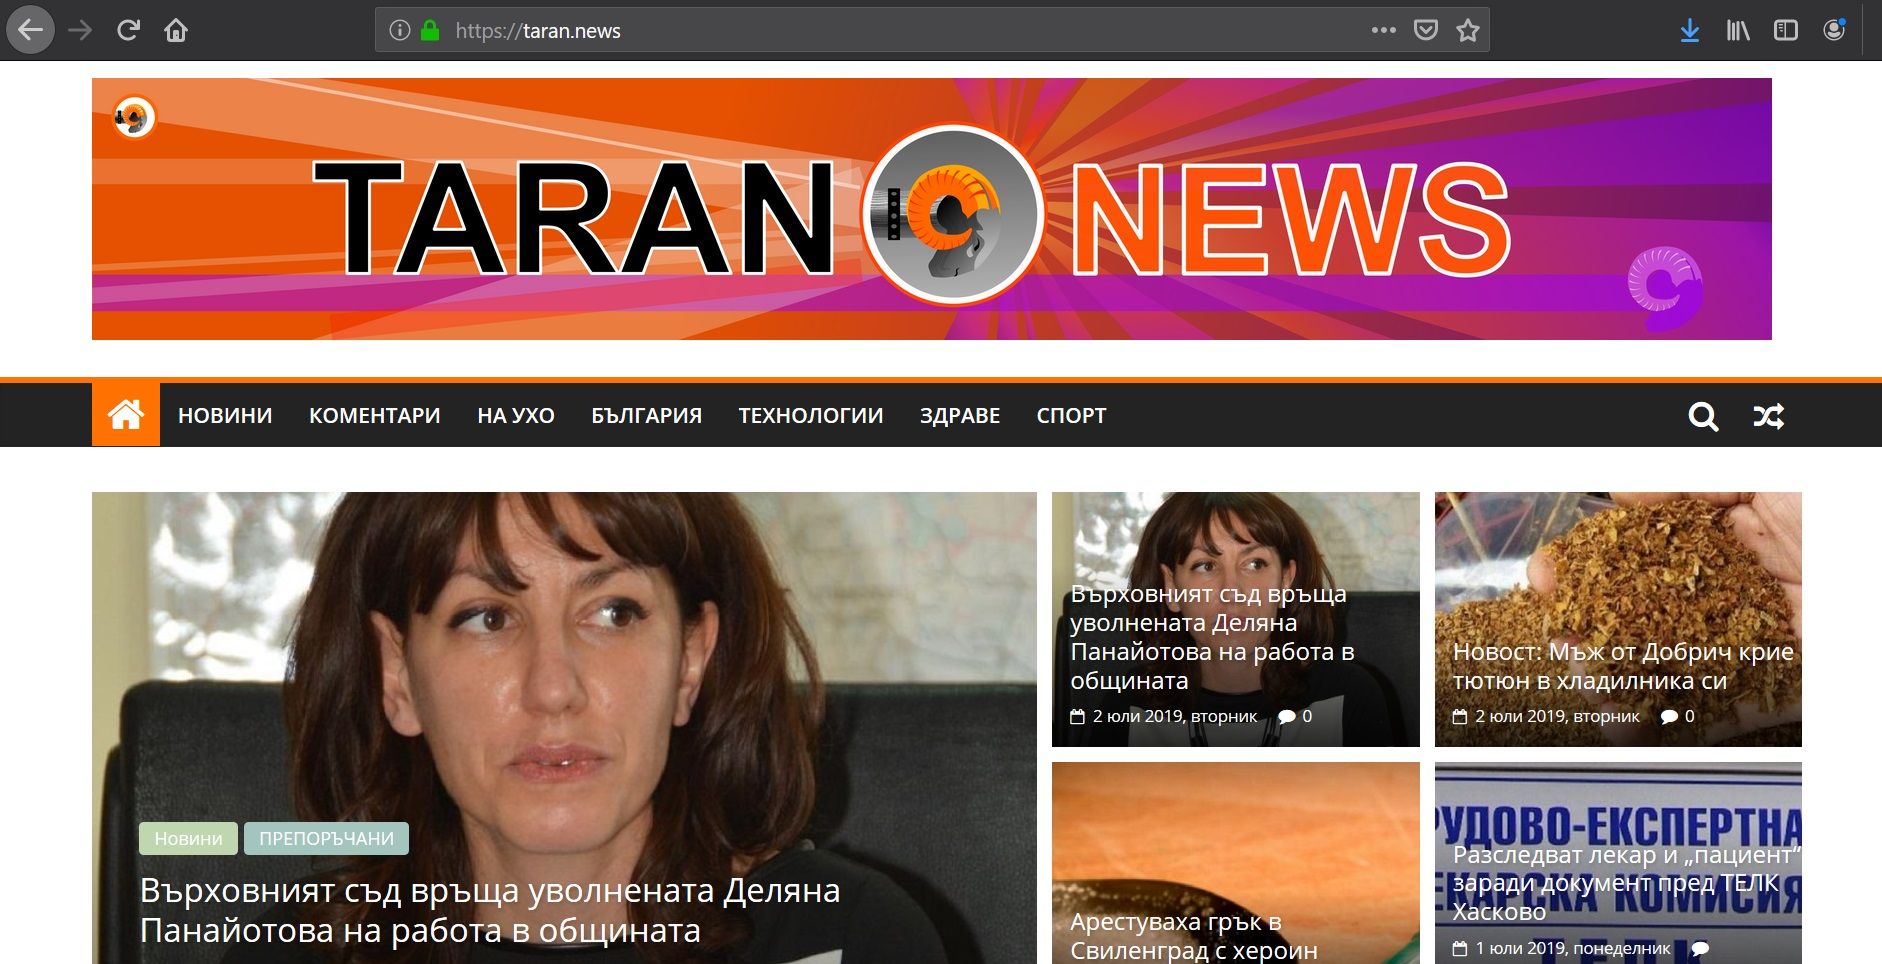 taran-news-website